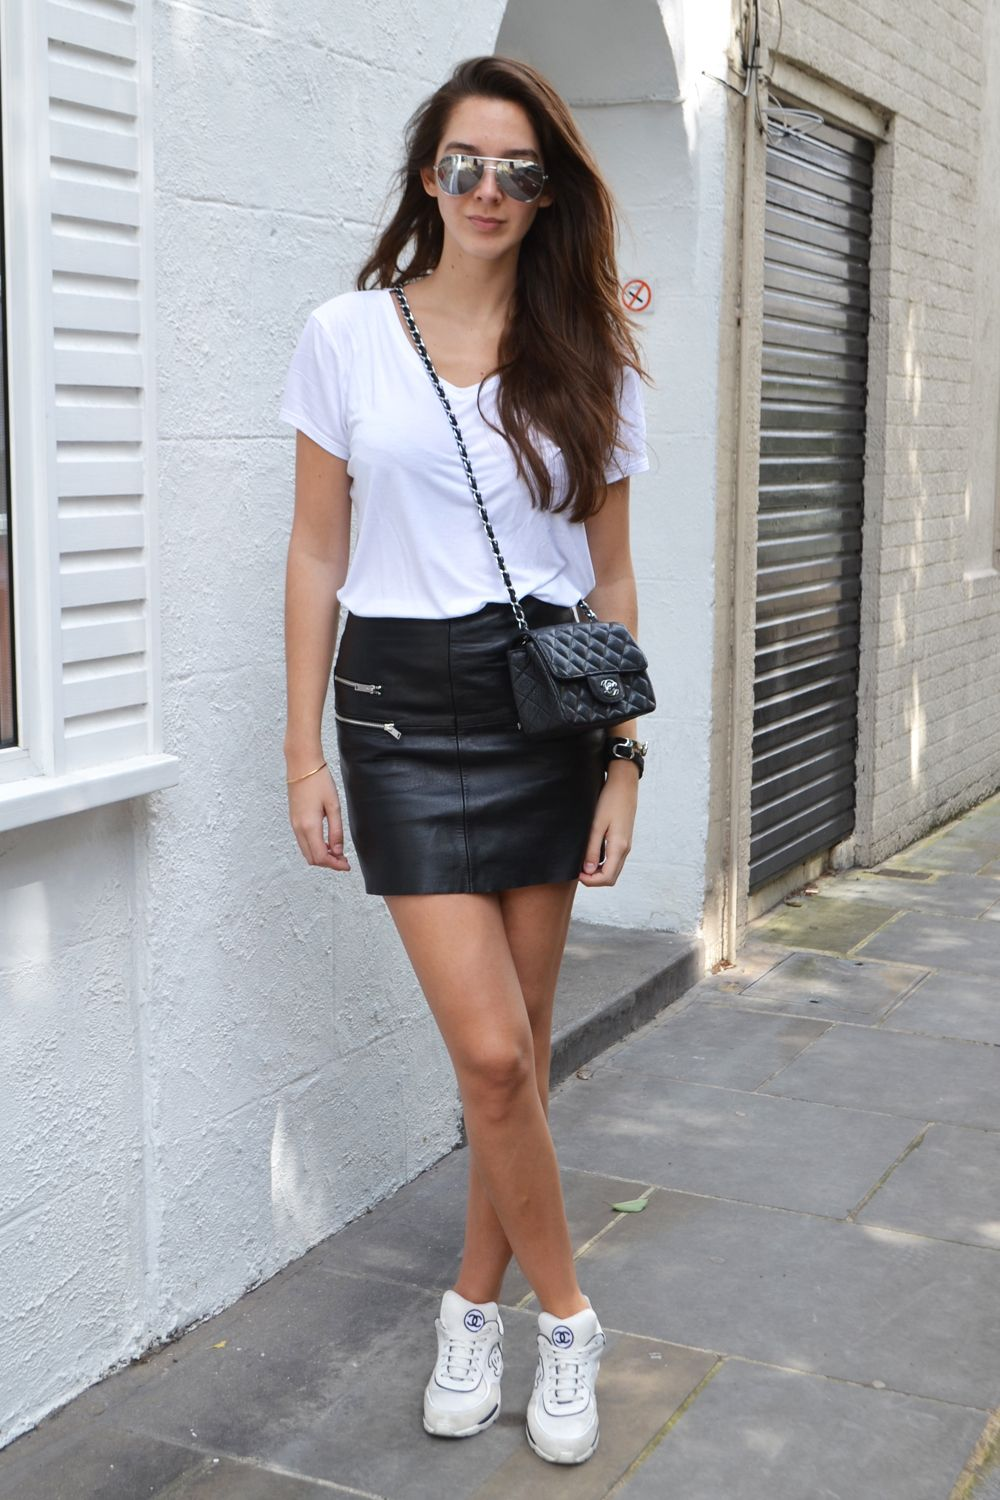 Chanel Sneakers Leather Skirt White Tee Street Style